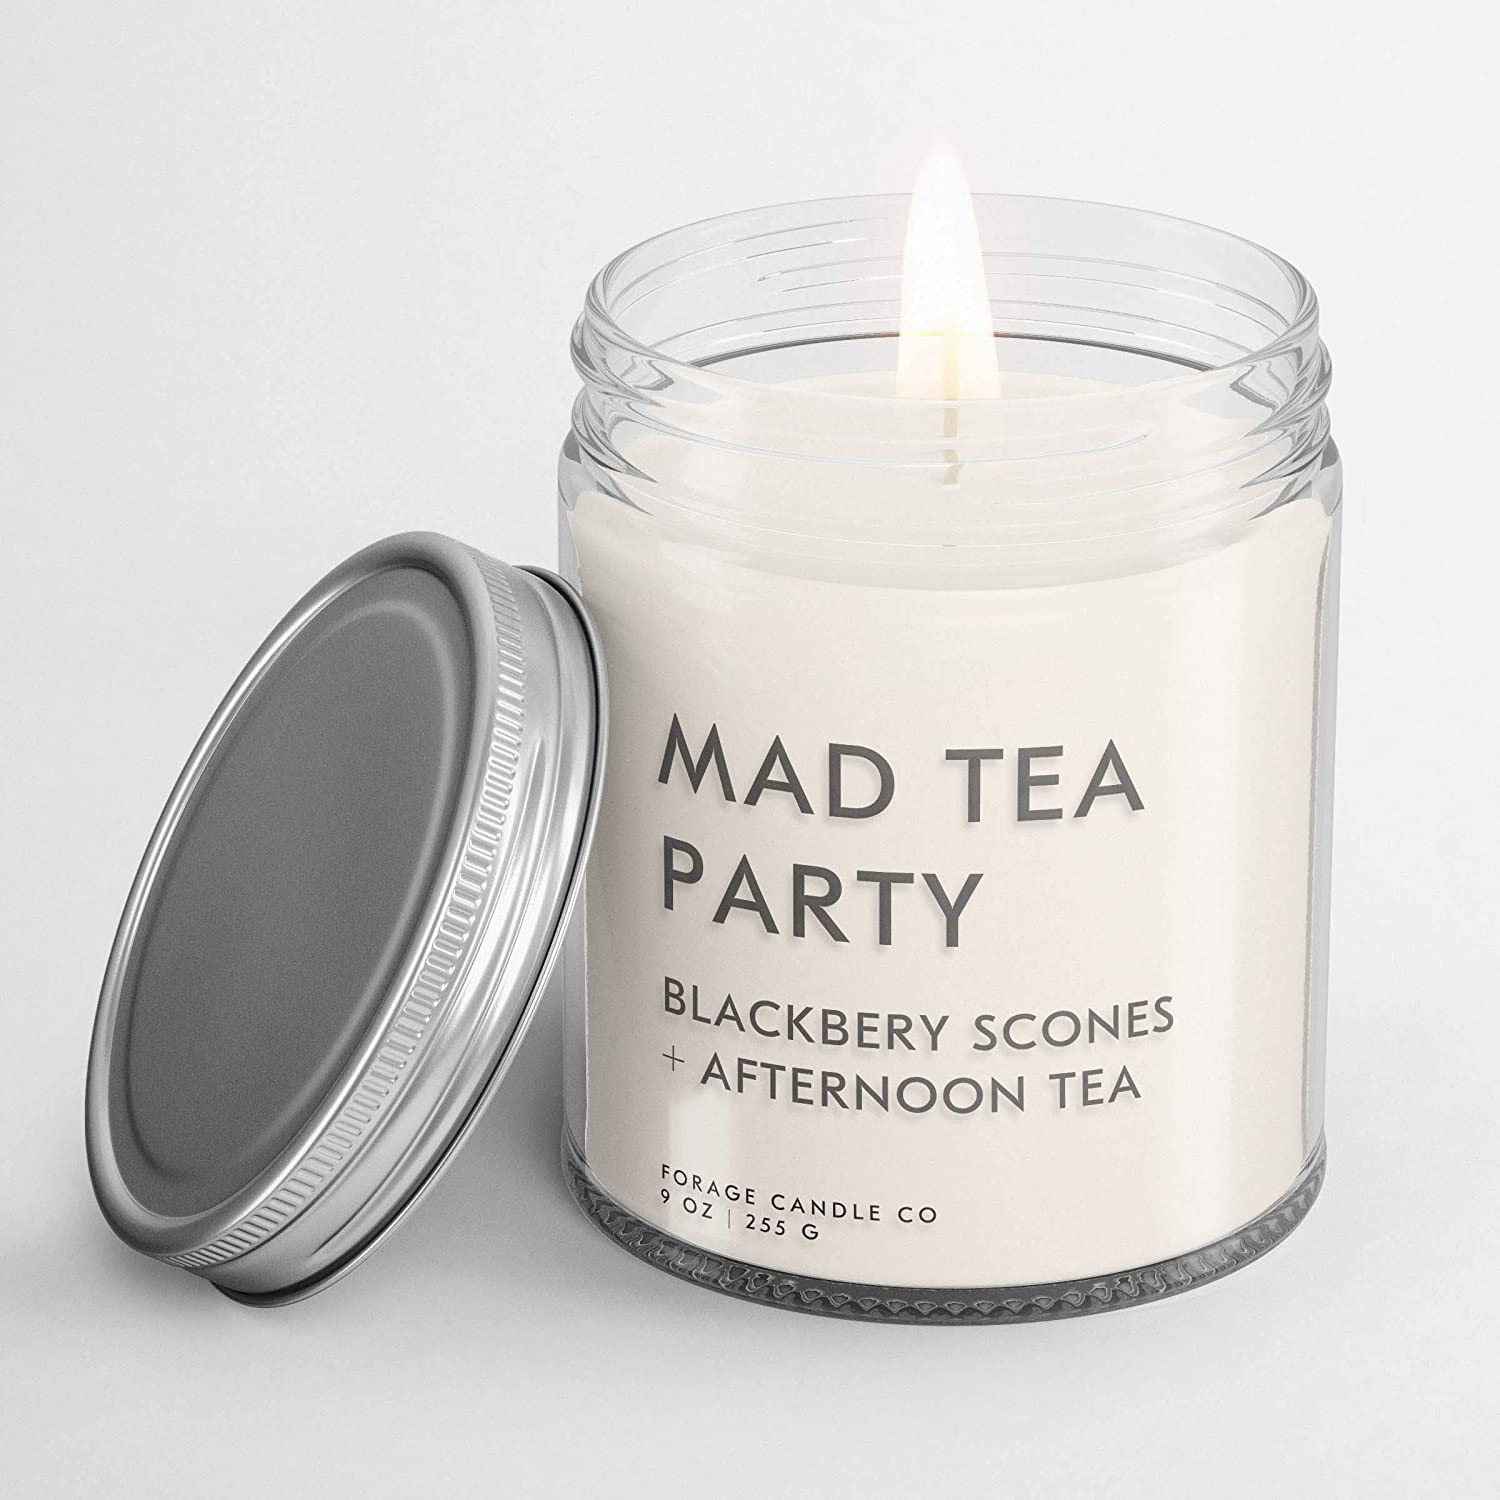 MAD TEA PARTY Book Lovers' Candle | Book Scented Candle | Vegan + Cruelty-Free + Phthalte-Free